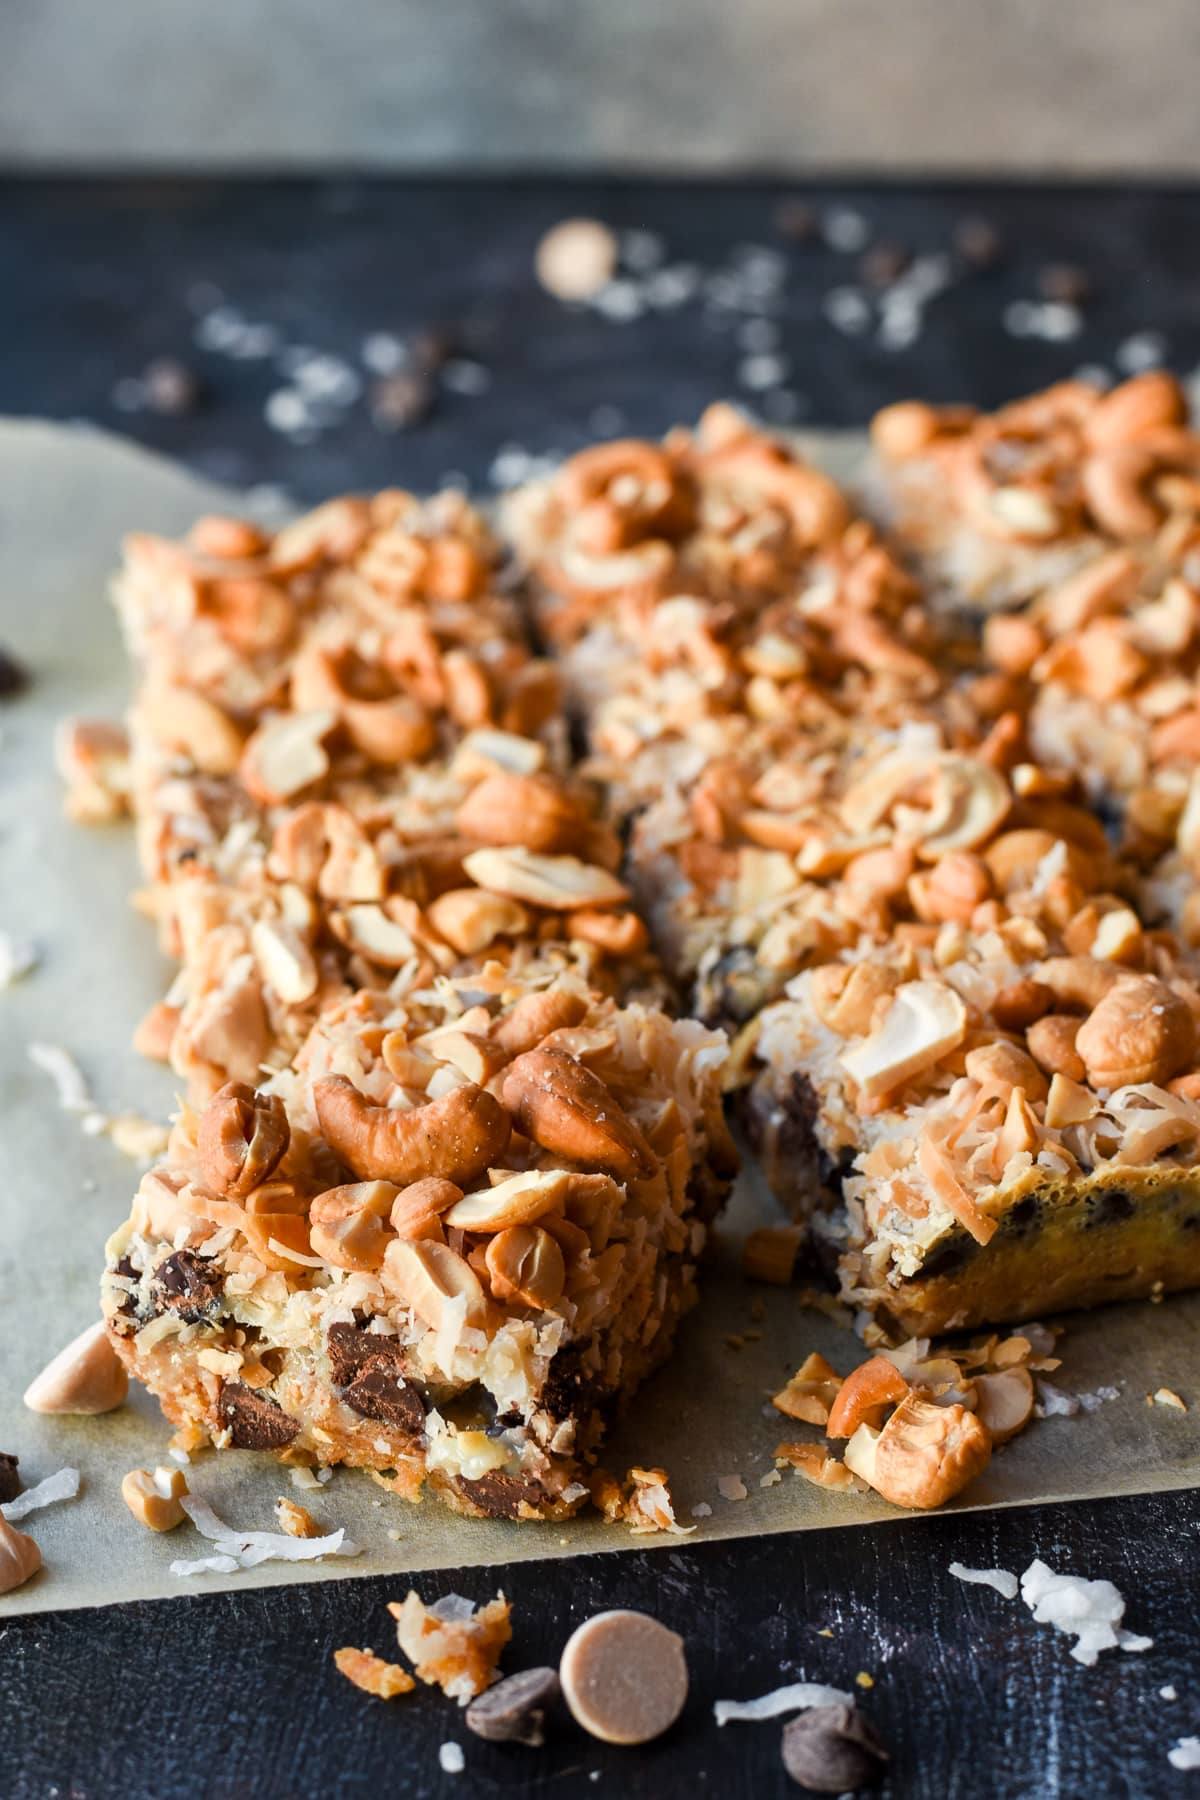 7 Layer Magic Bars are stacked with chocolate, caramel, coconut, and cashews for a rich dessert everyone will love!